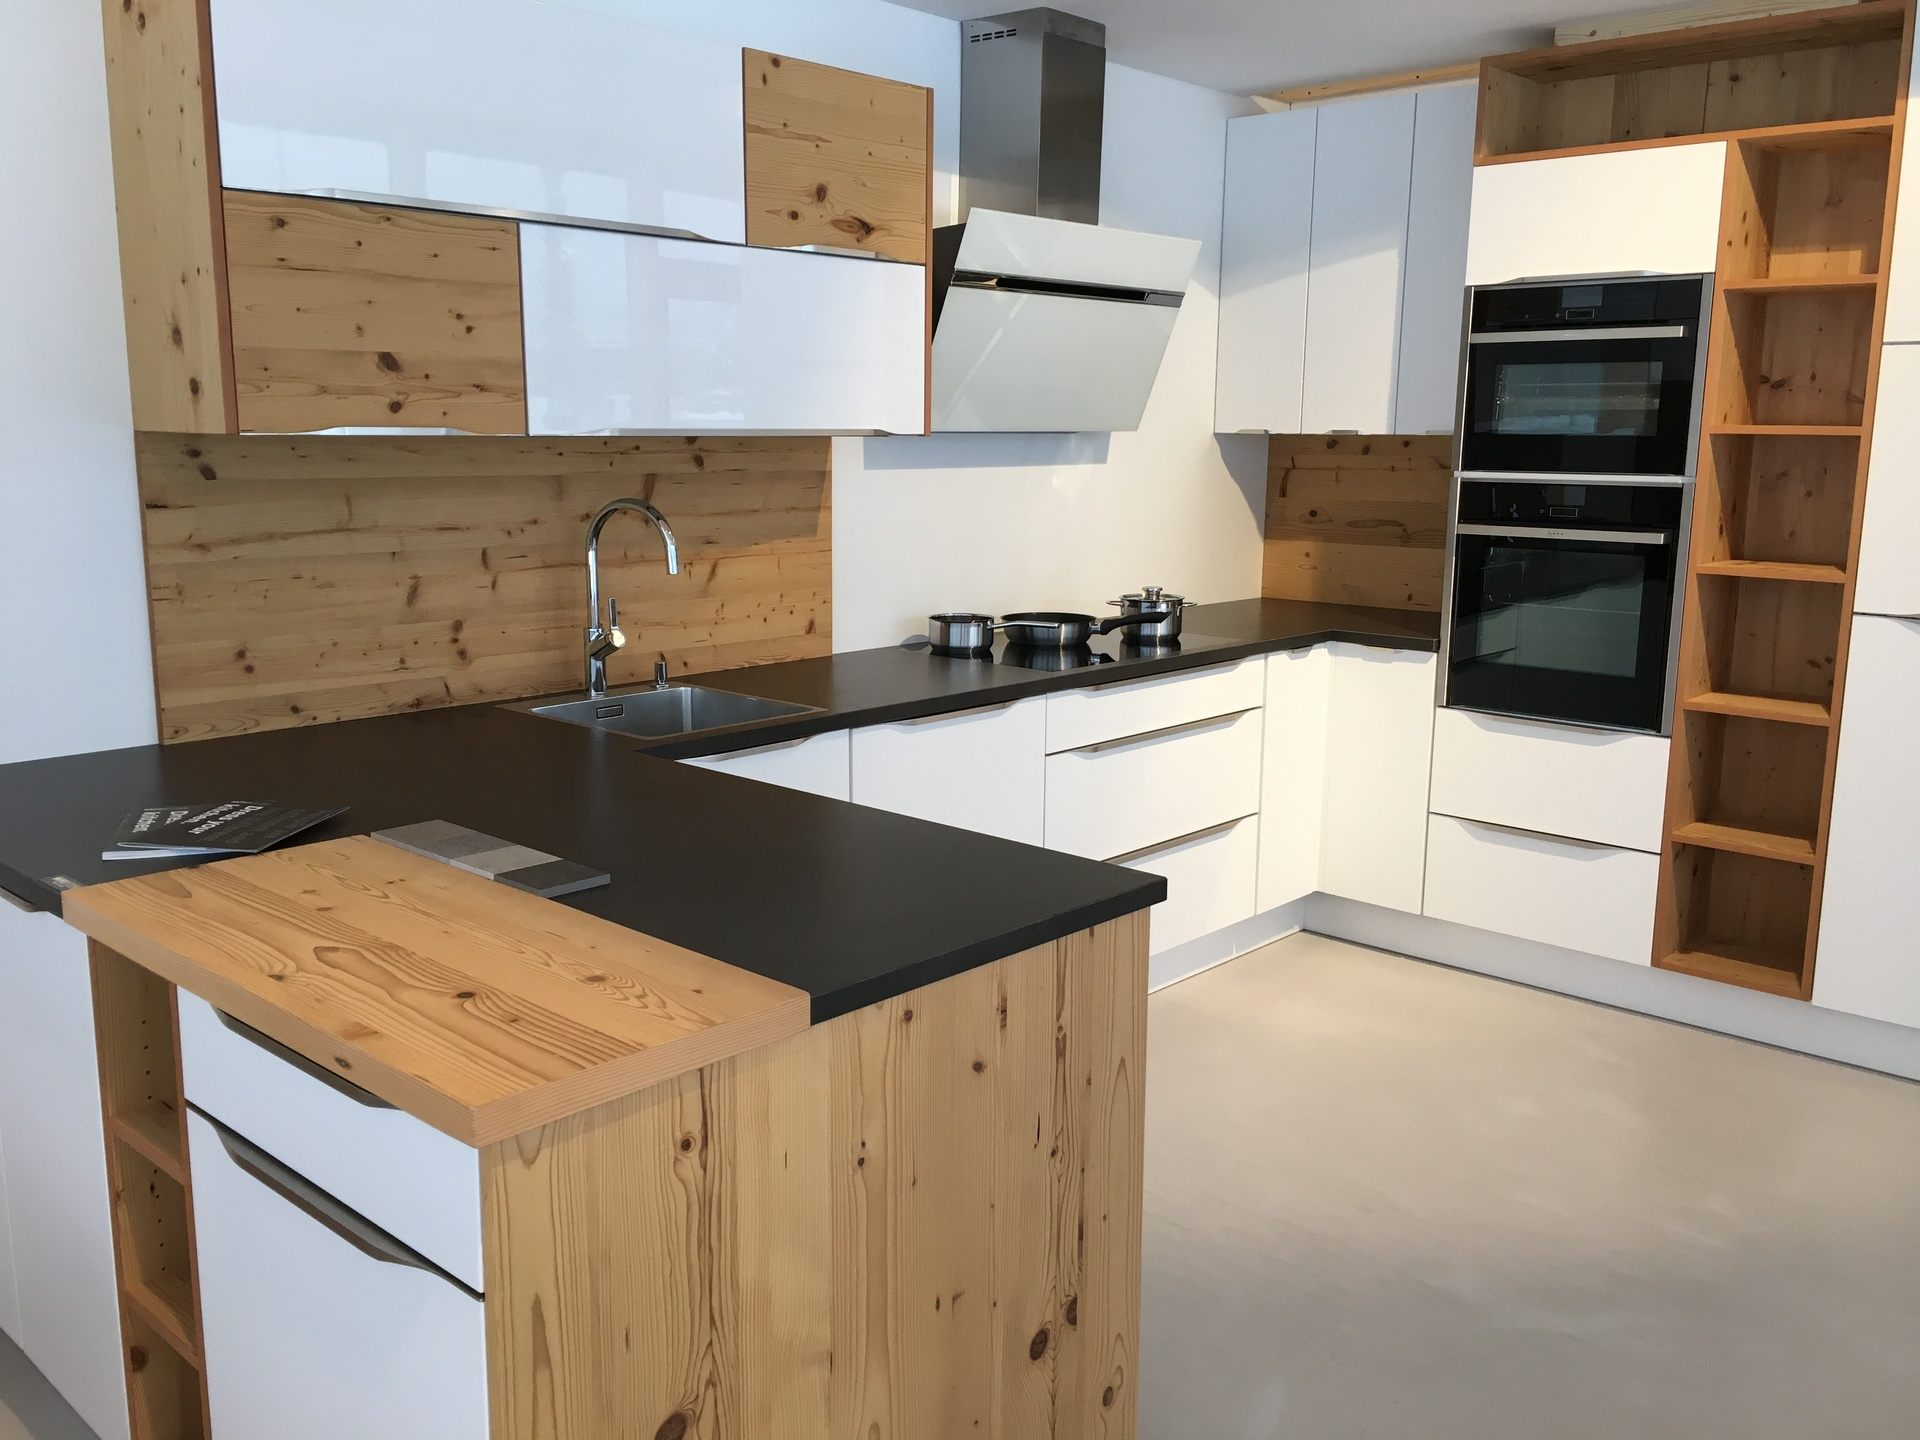 SapienStone: the best surfaces for the kitchen countertop in ...